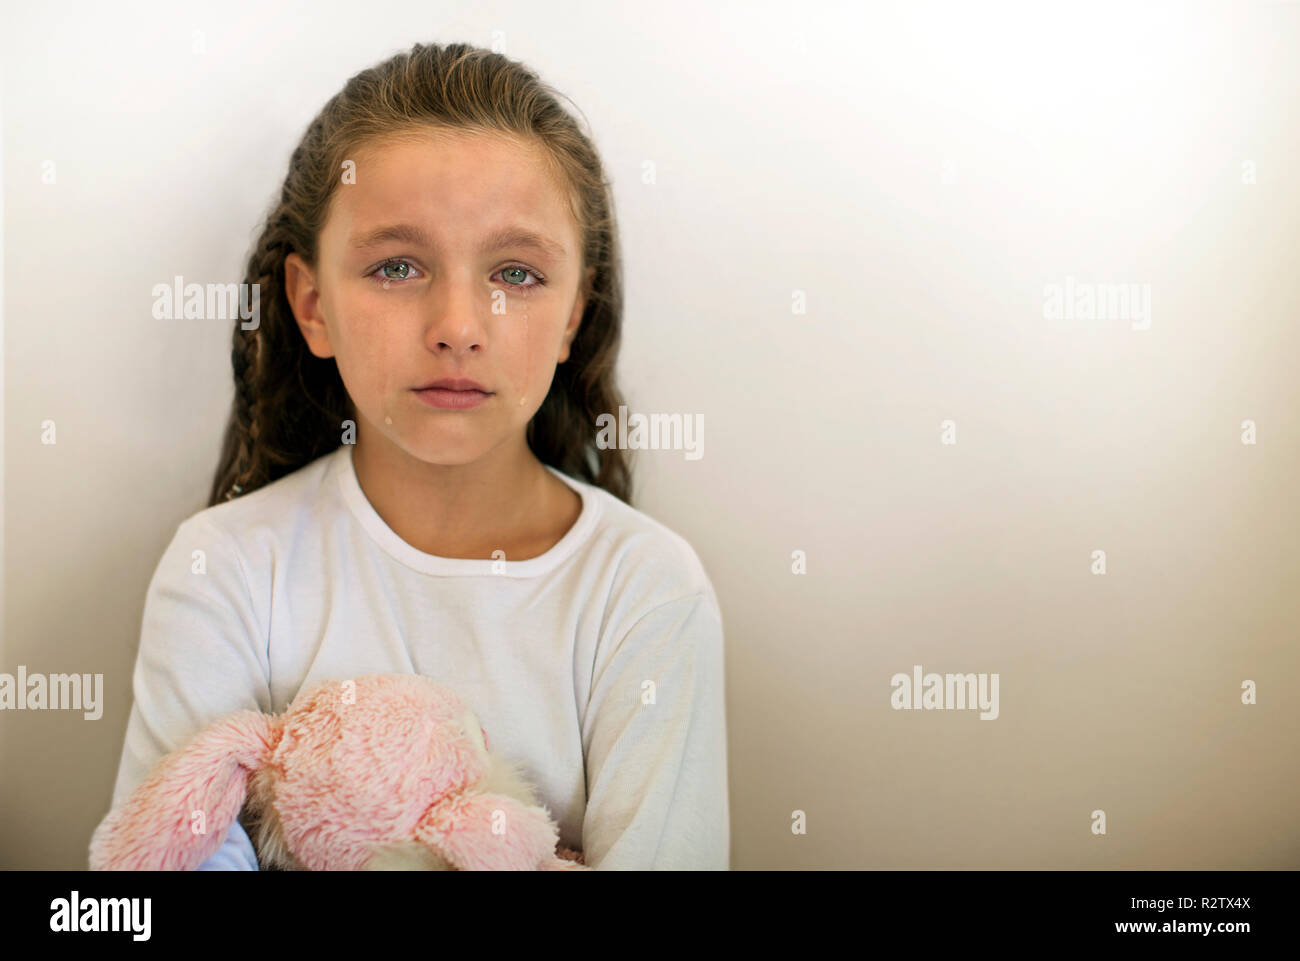 Portrait of young girl crying, holding soft toy. - Stock Image